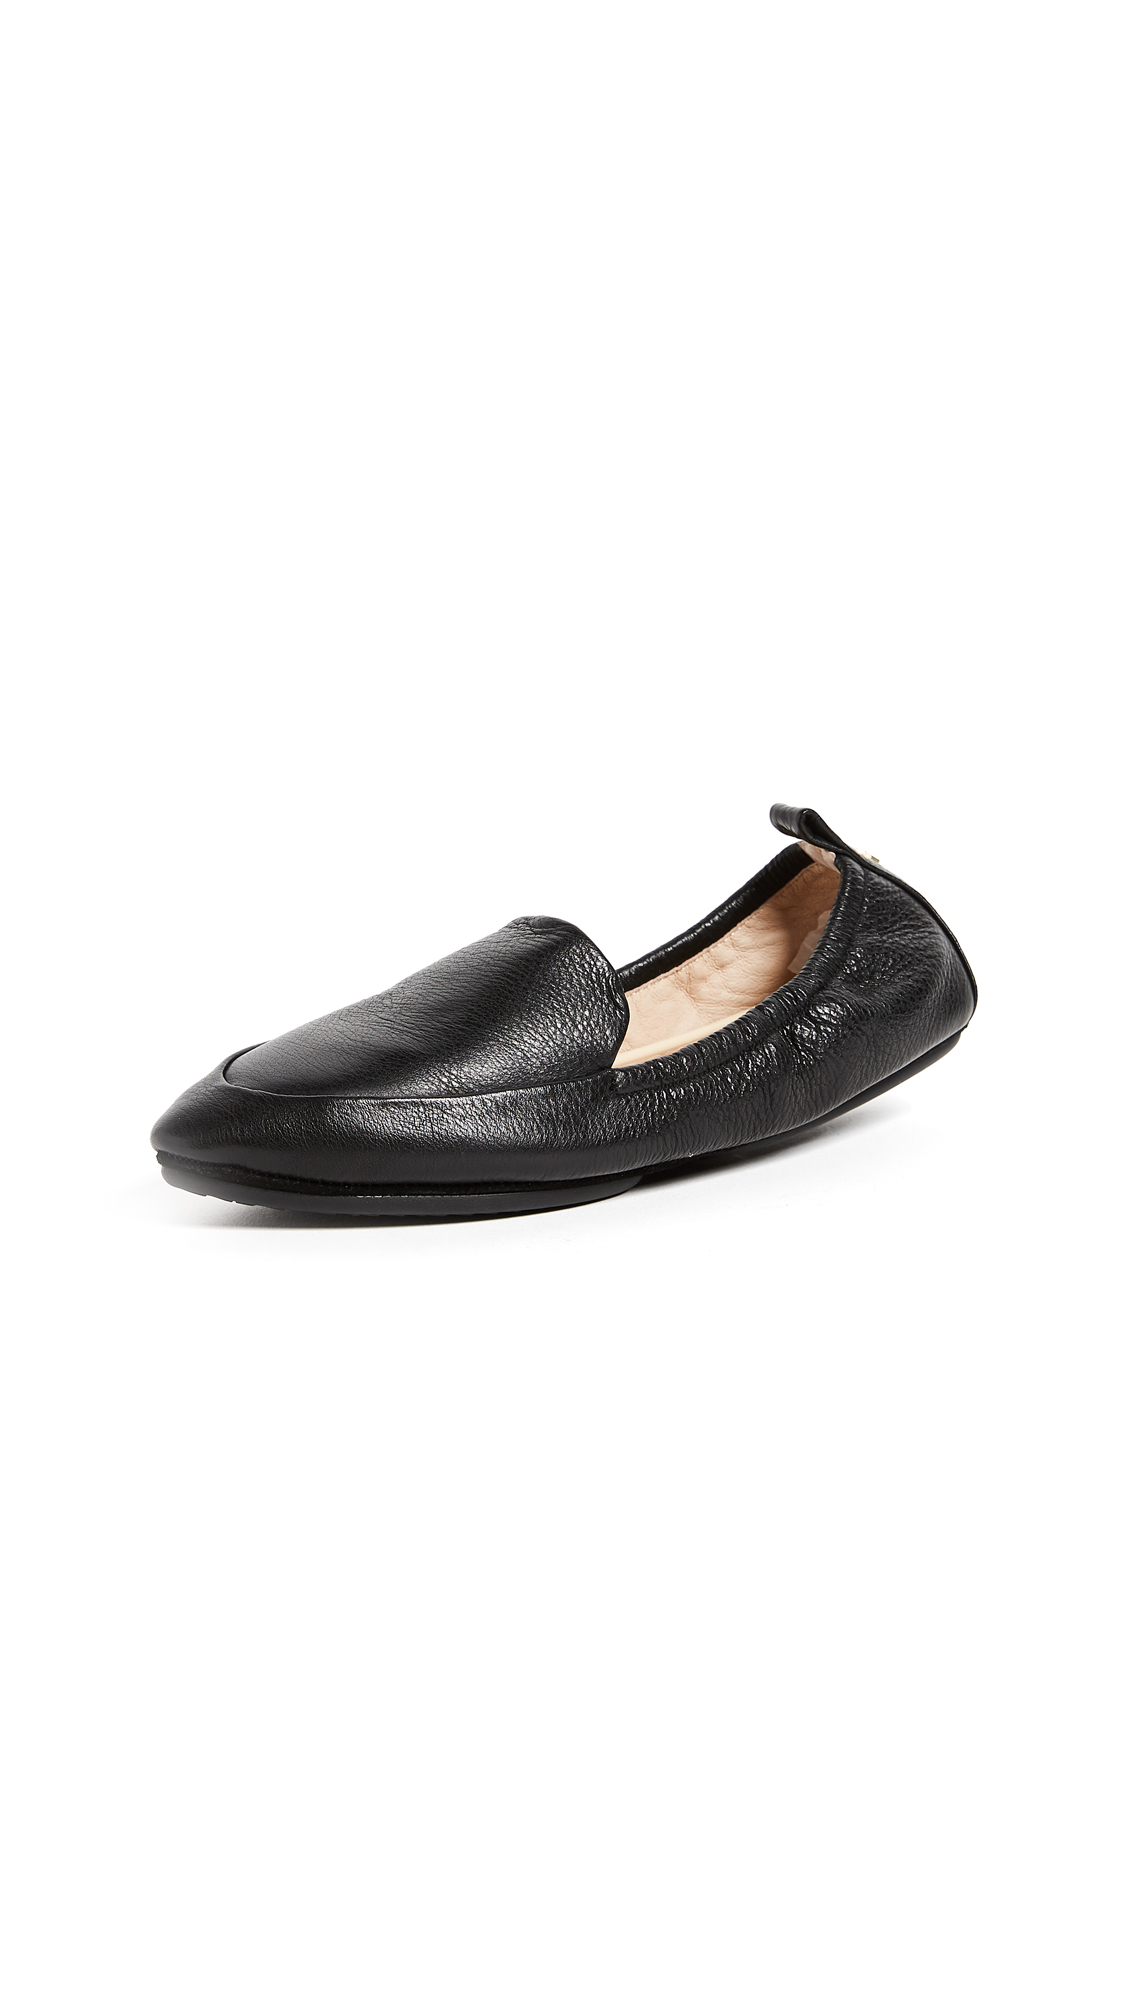 Yosi Samra Skyler Convertible Loafers In Black